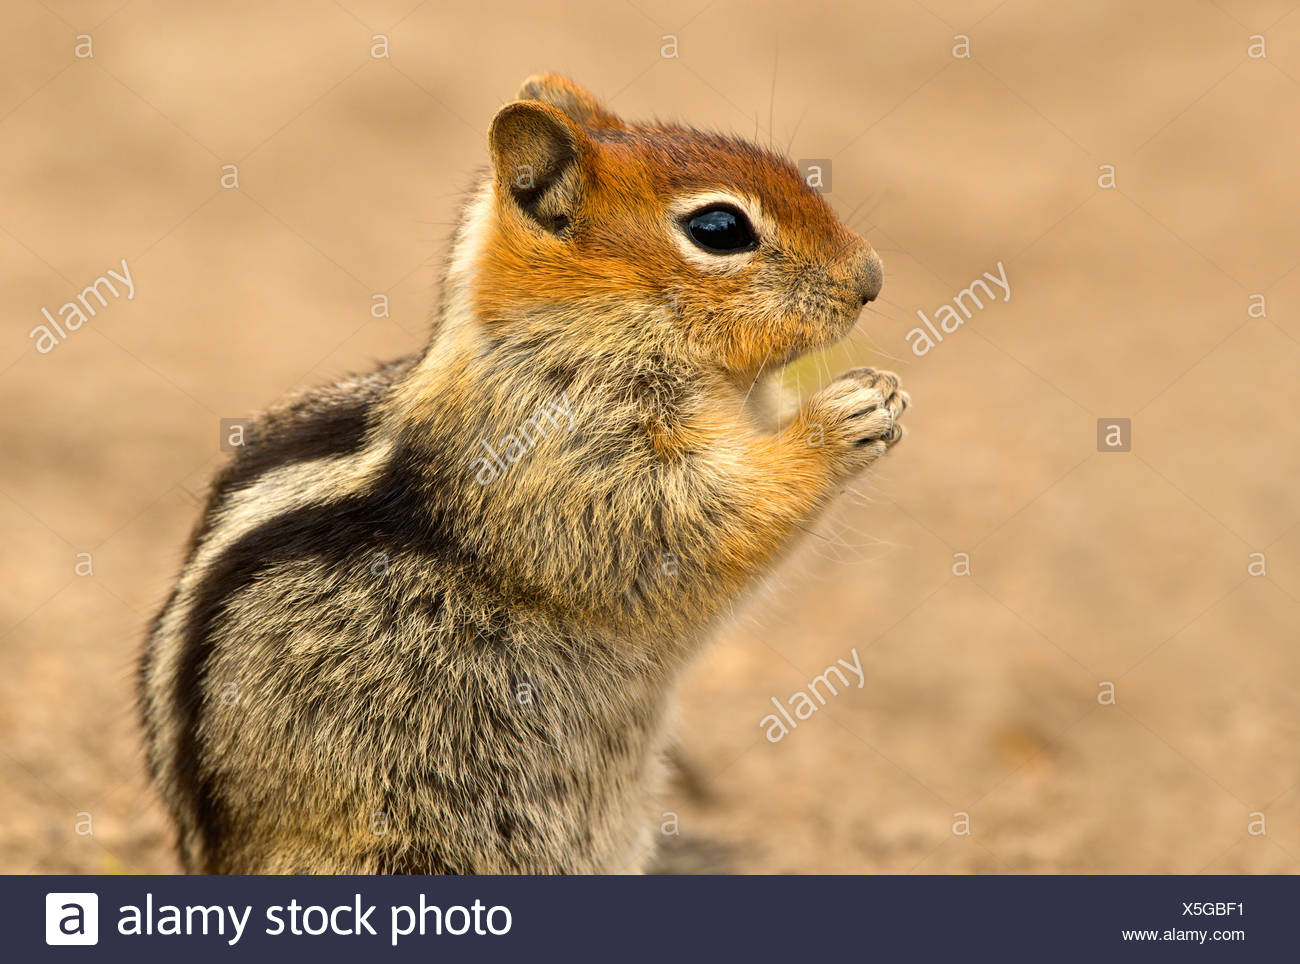 Golden-mantled ground squirrel (Spermophilus lateralis) at Deschutes National Forest, Oregon, USA - Stock Image